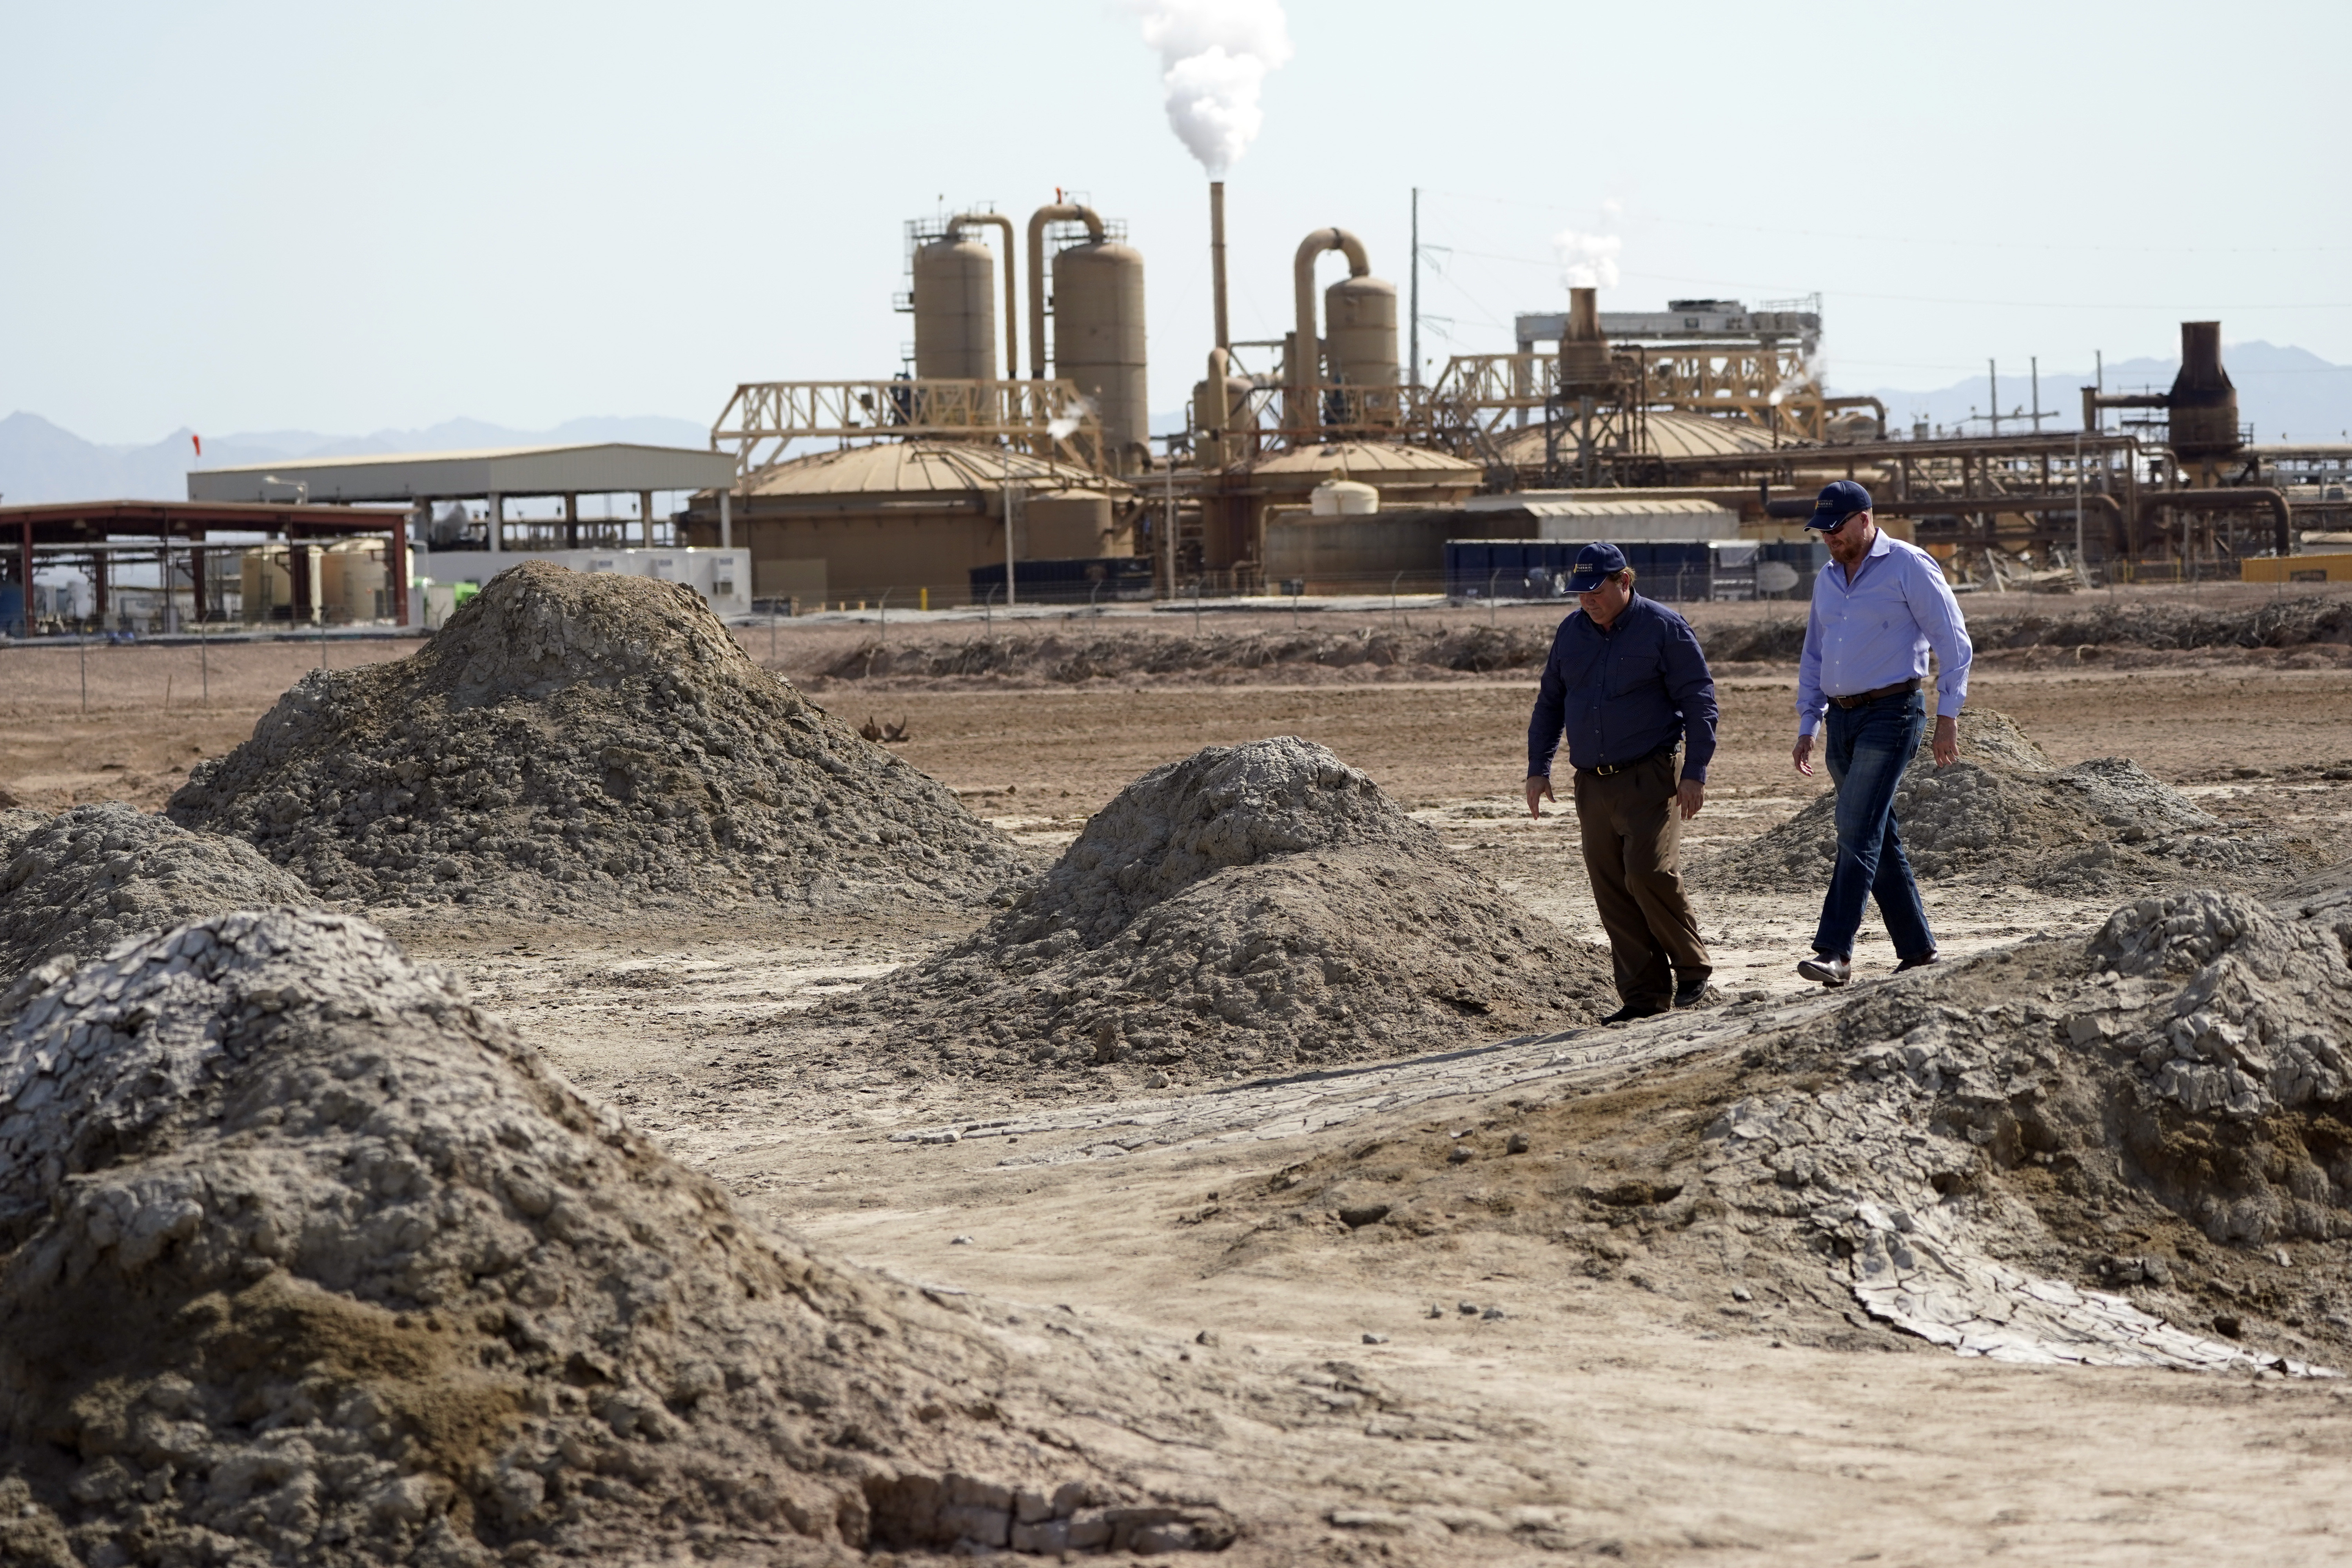 Rod Colwell (right), CEO of Controlled Thermal Resources, and Tracy Sizemore, the company's global director of battery materials, walk along geothermal mud pots near the shore of the Salton Sea, where the company is mining lithium from geothermal wastewater around the dying body of water. The ultralight metal is critical to rechargeable batteries.